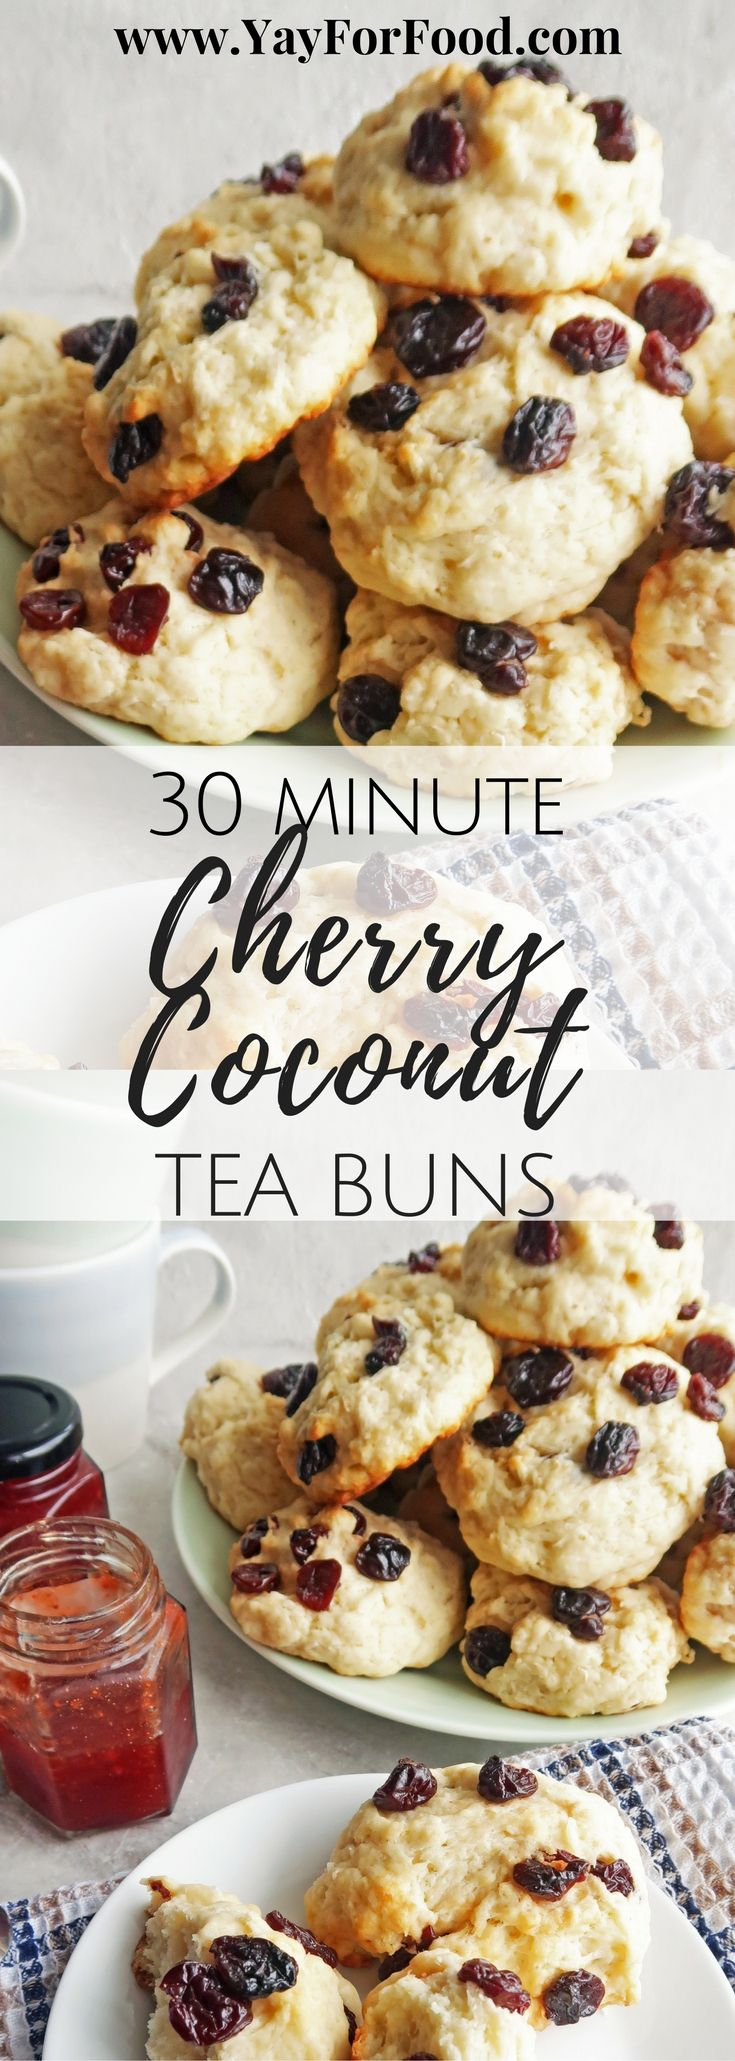 A wonderful combination of shredded coconut and dried cherries are showcased in this delicious tea bun that's ready in 30 minutes! Breakfast | Quick bread | Snacks | Easy recipes | Fast Recipes | Afternoon Tea | Biscuits